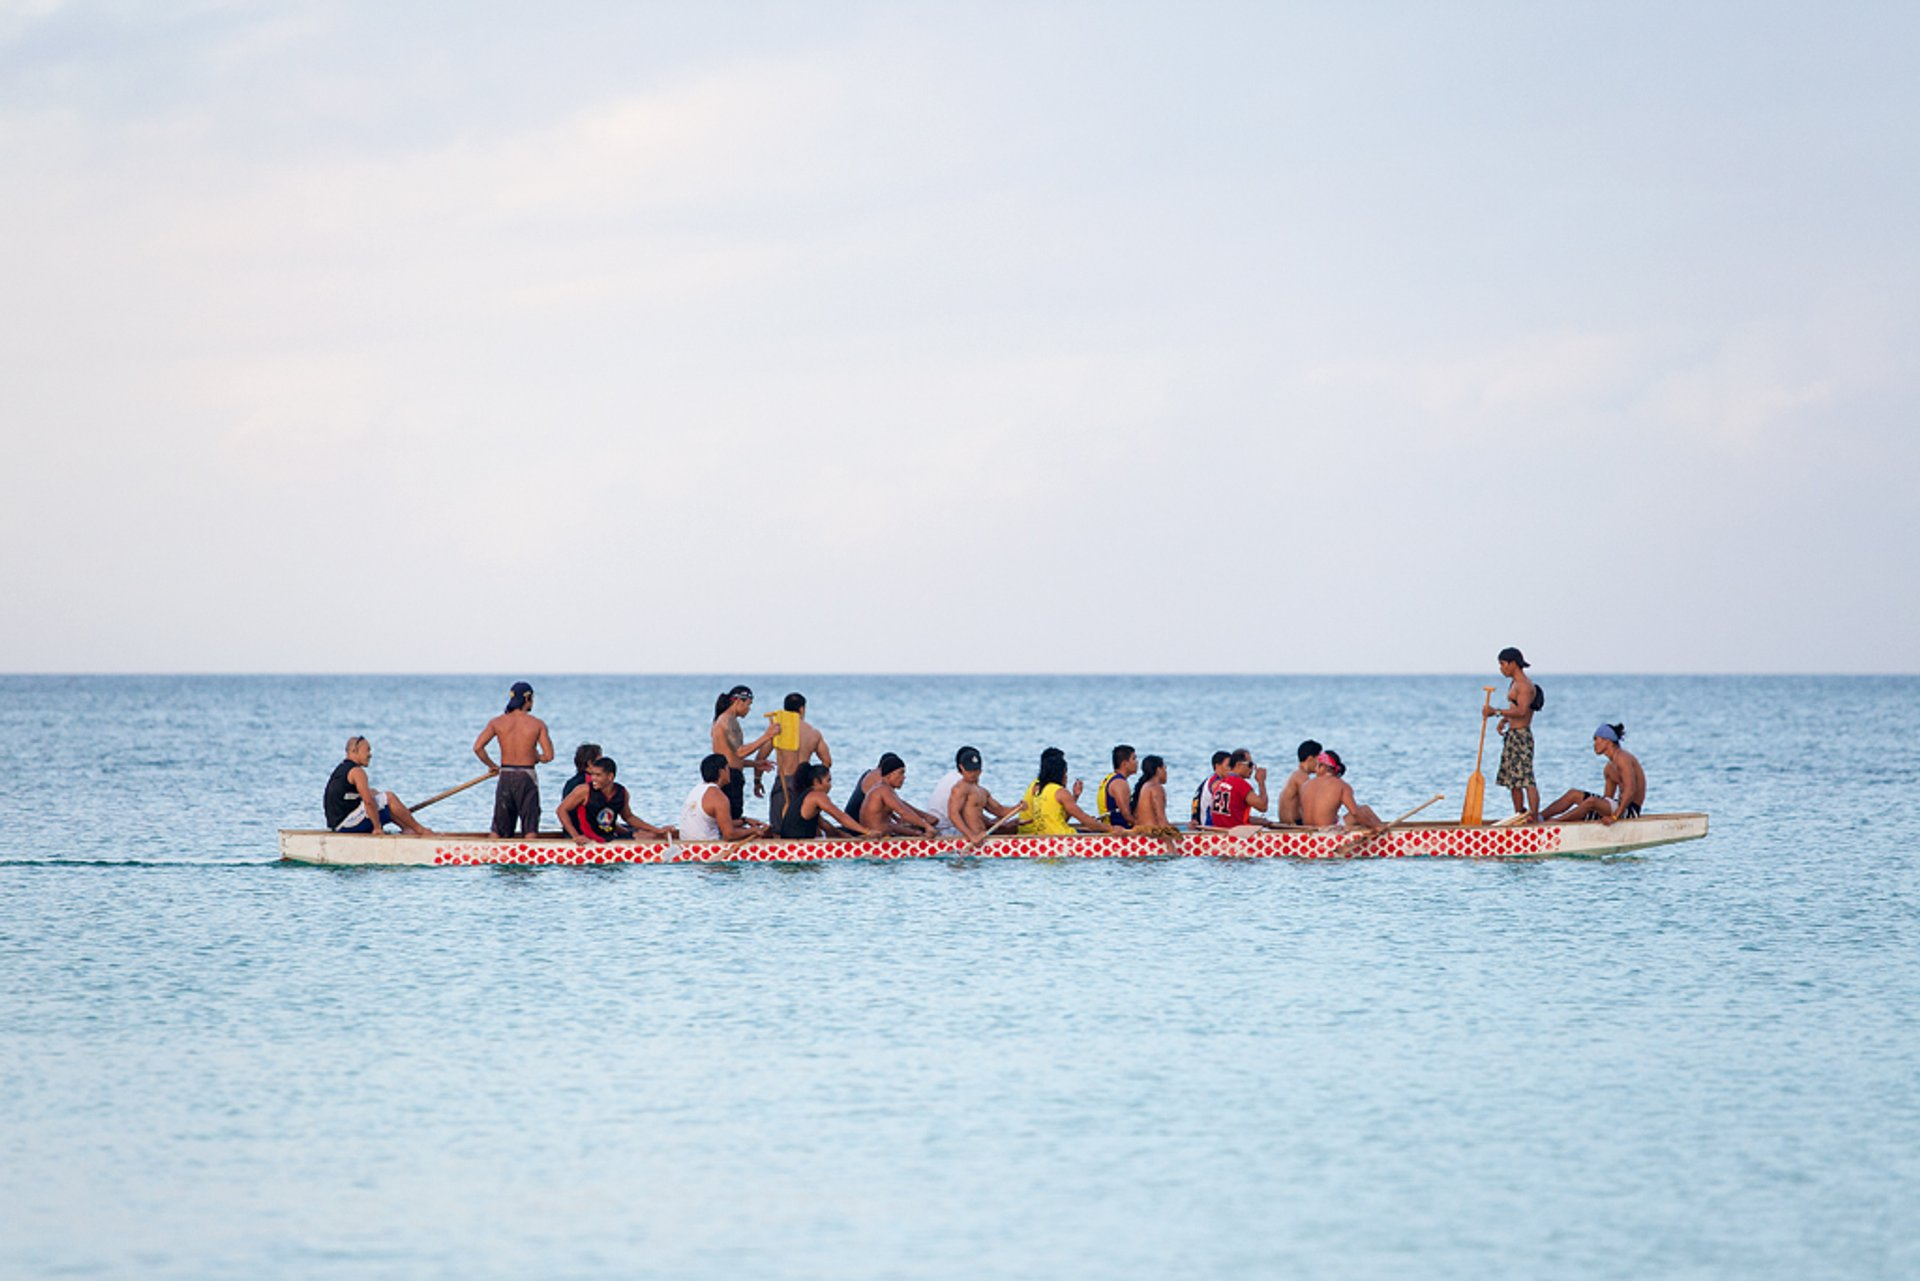 Boracay International Dragon Boat Festival in Philippines 2020 - Best Time